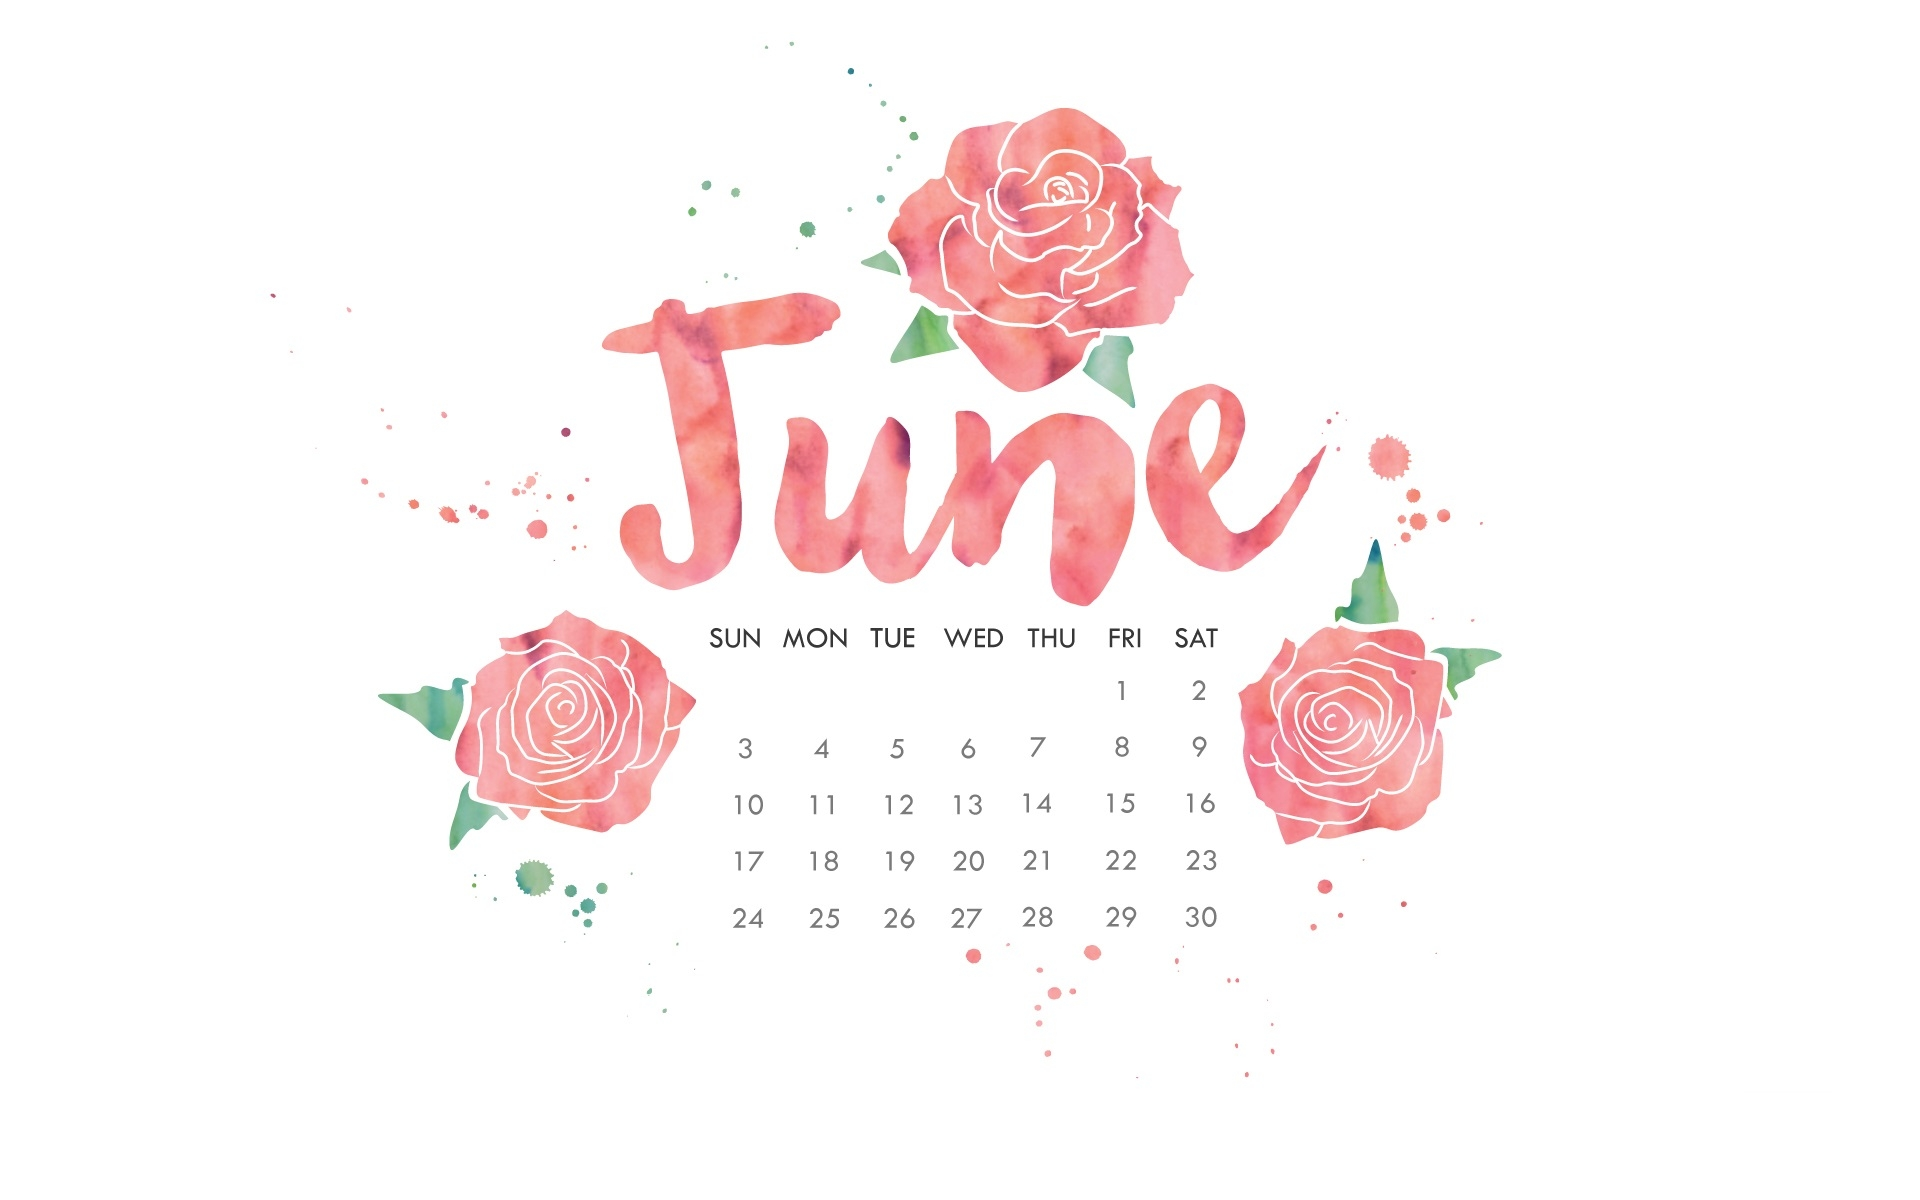 june 2019 hd calendar wallpapers calendar 2018::June 2019 iPhone Calendar Wallpaper